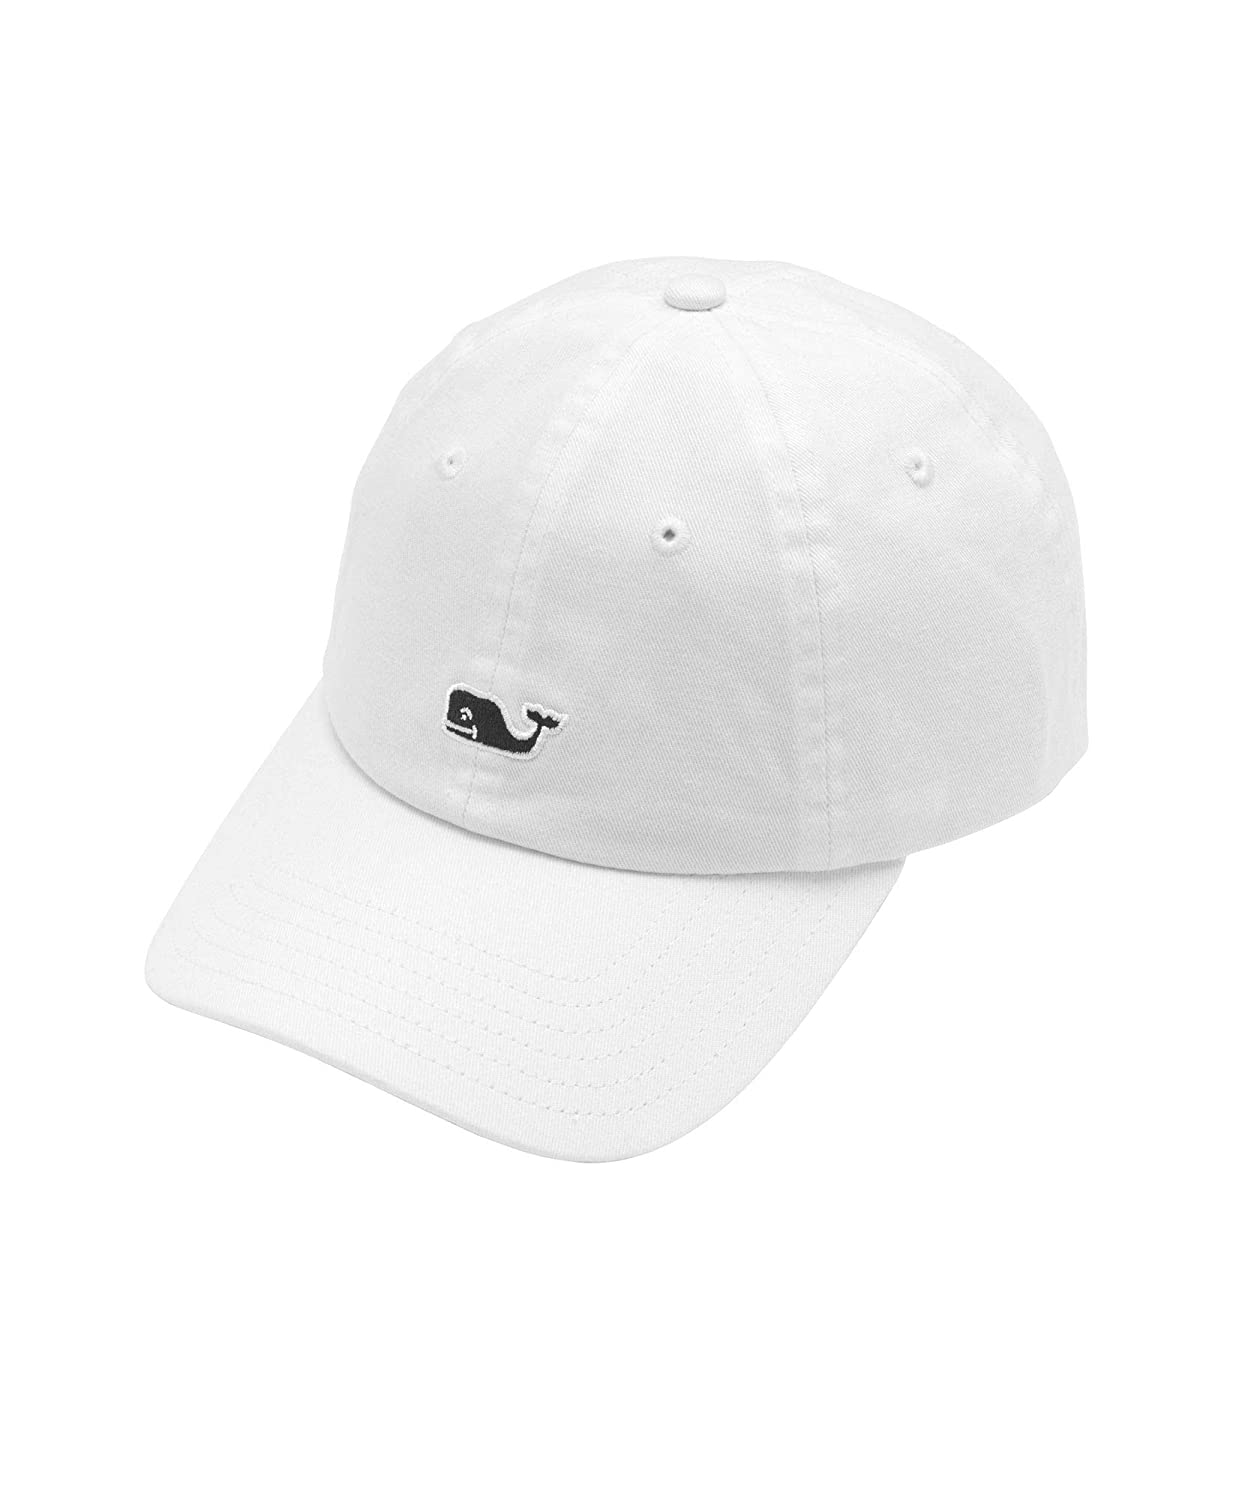 a66395c6307a0 Amazon.com  Vineyard Vines Whale Logo Baseball Hat (White Cap)  Clothing